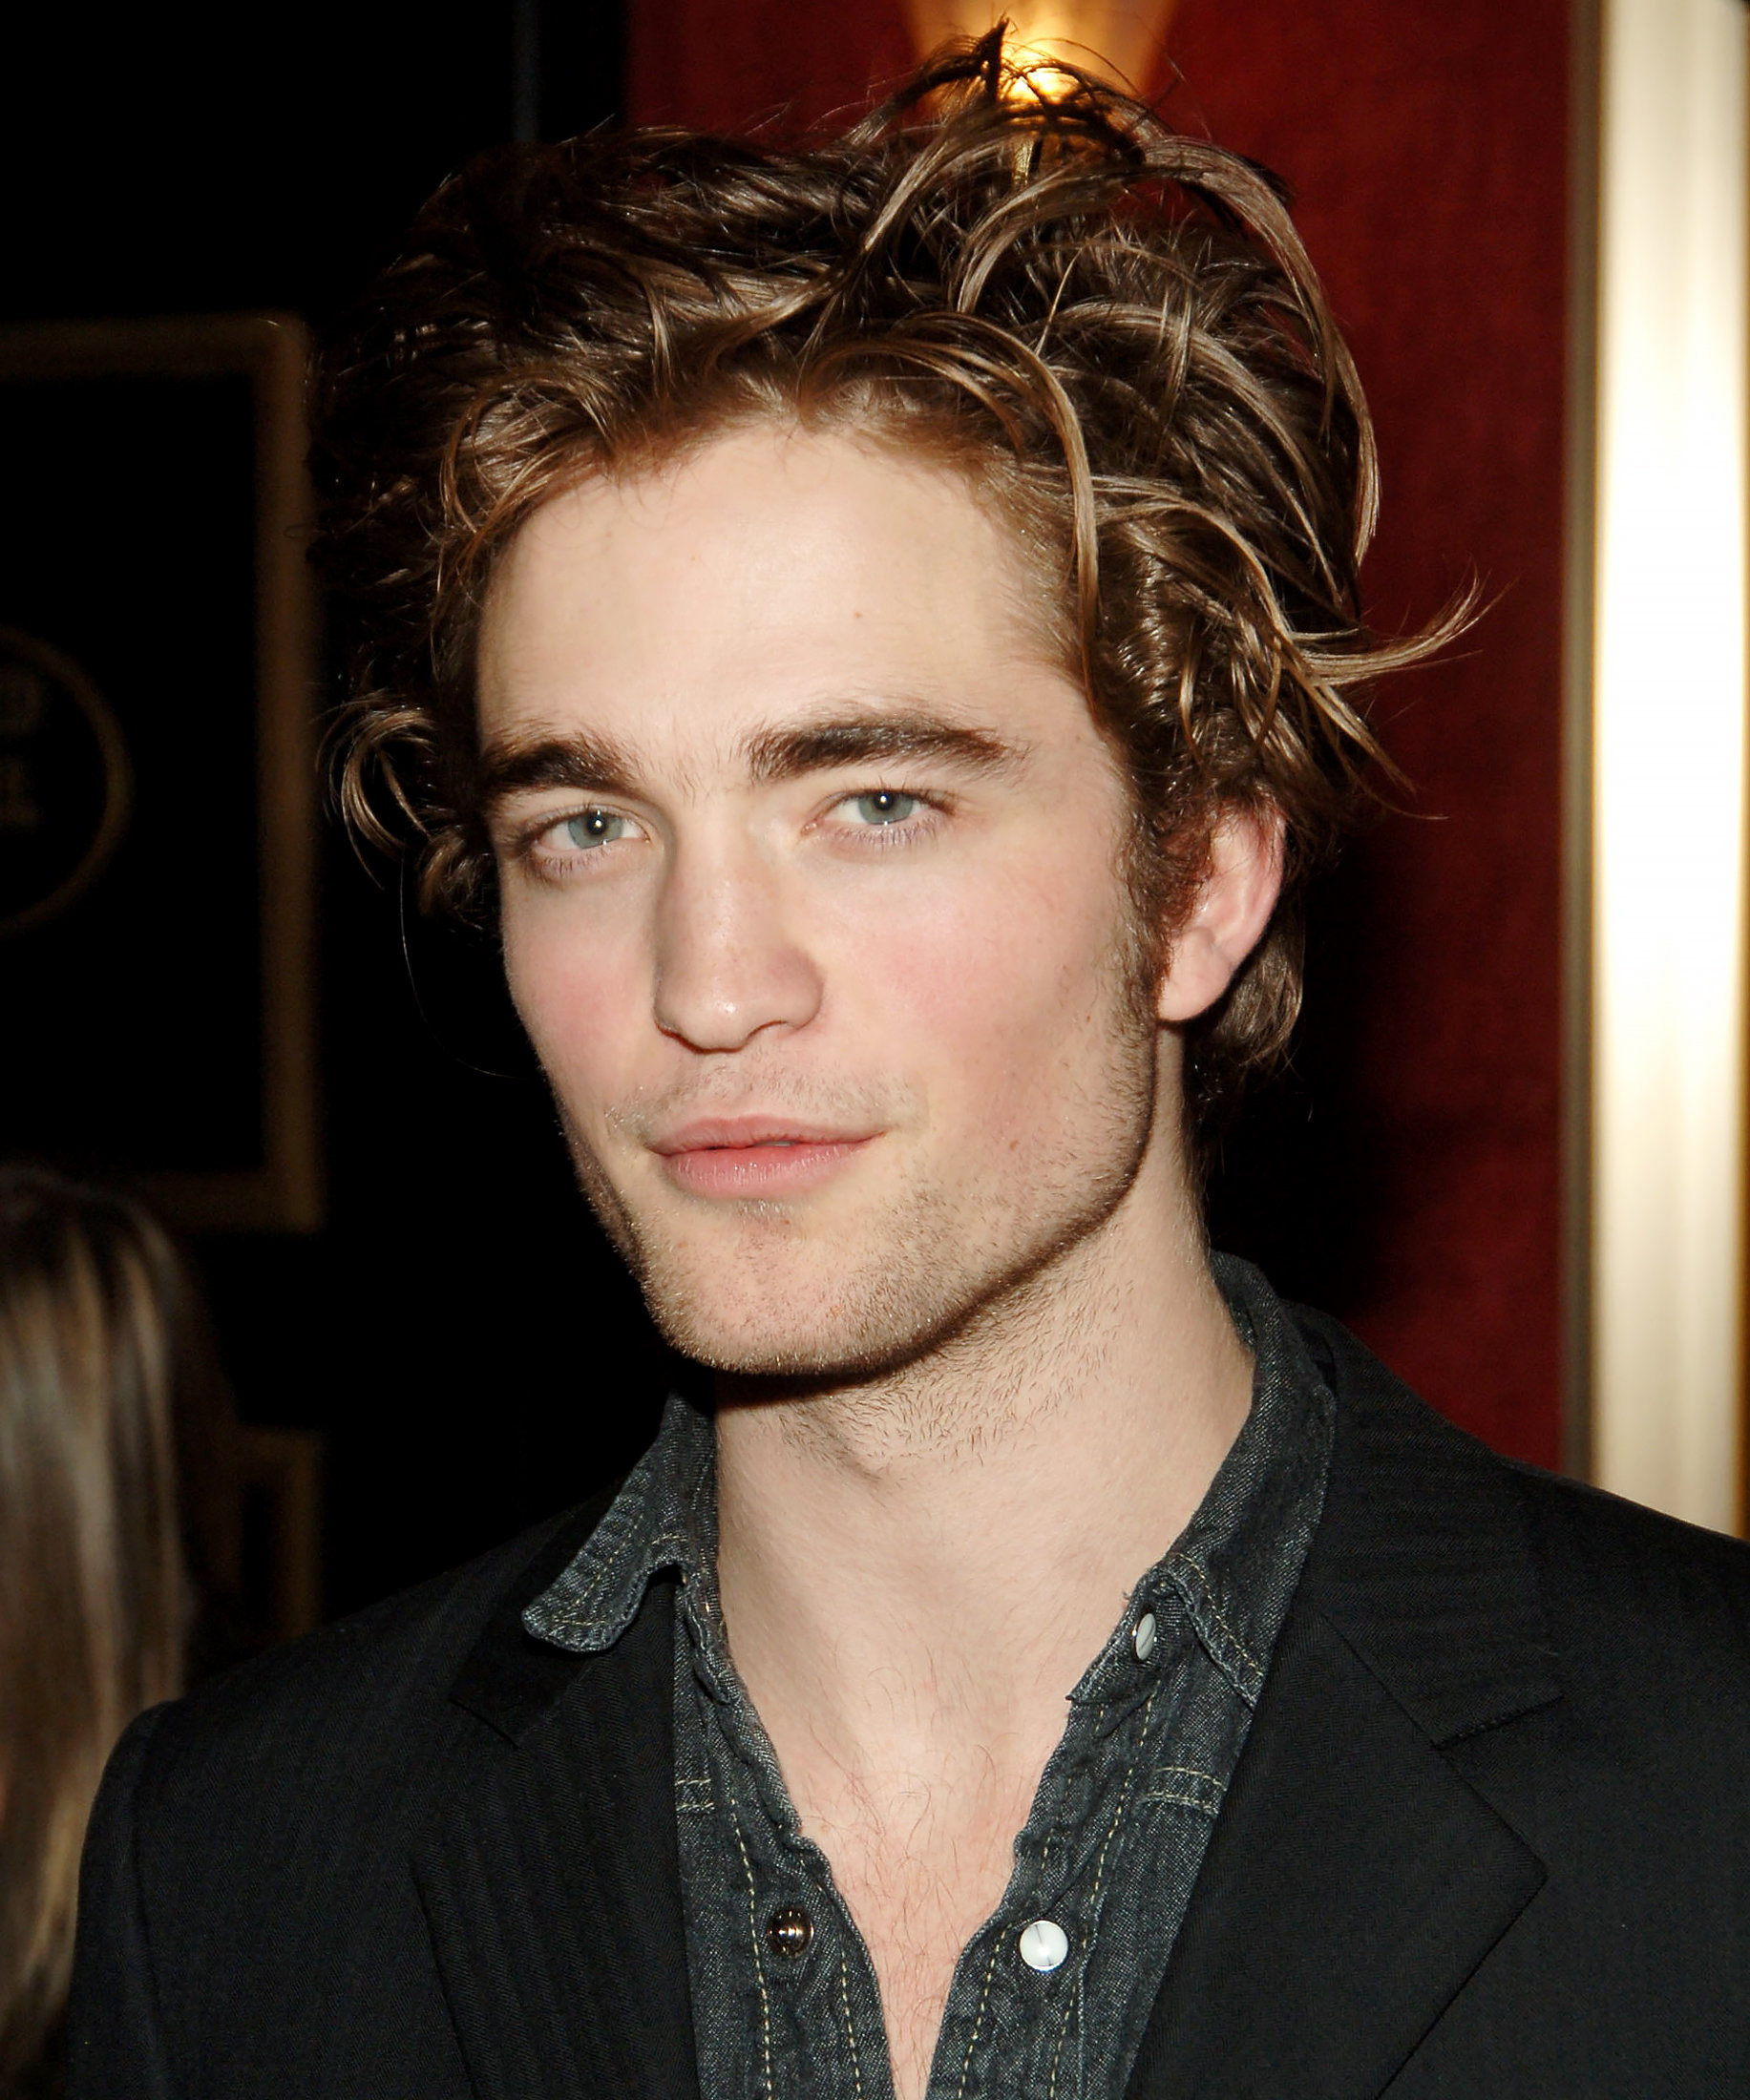 Robert Pattinson net worth